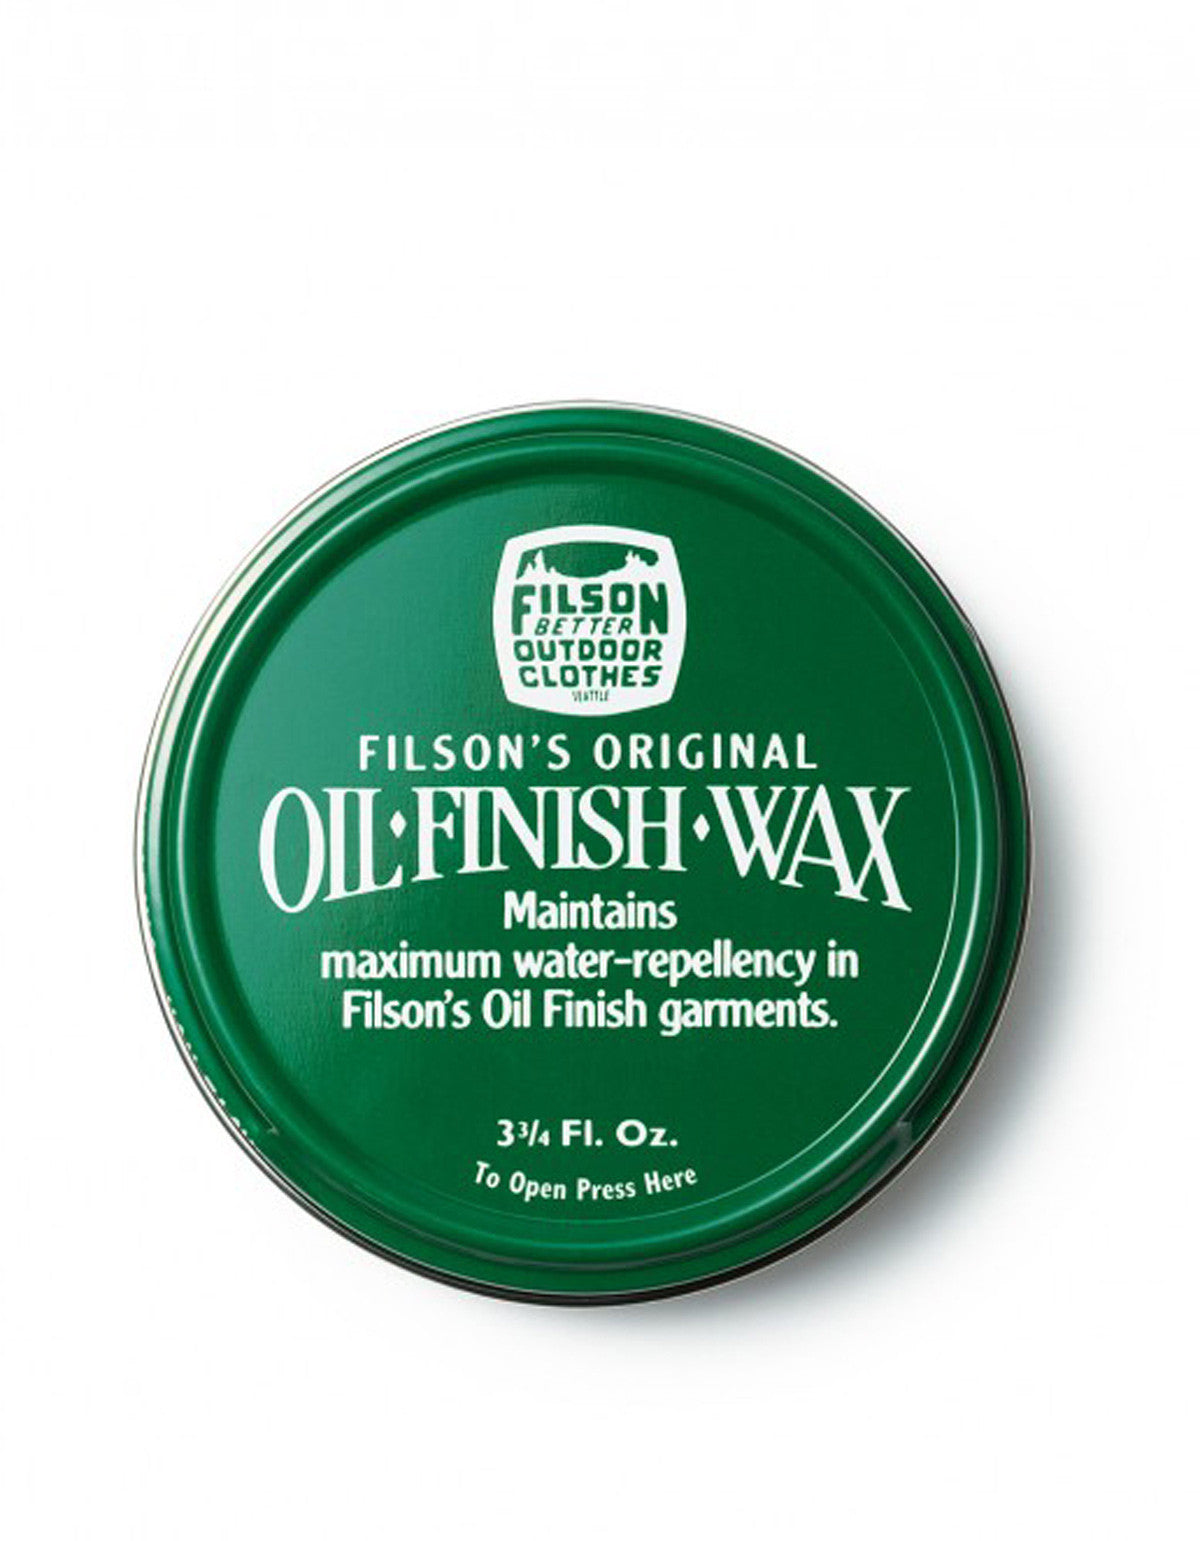 Filson Oil Finish Wax - Still Life